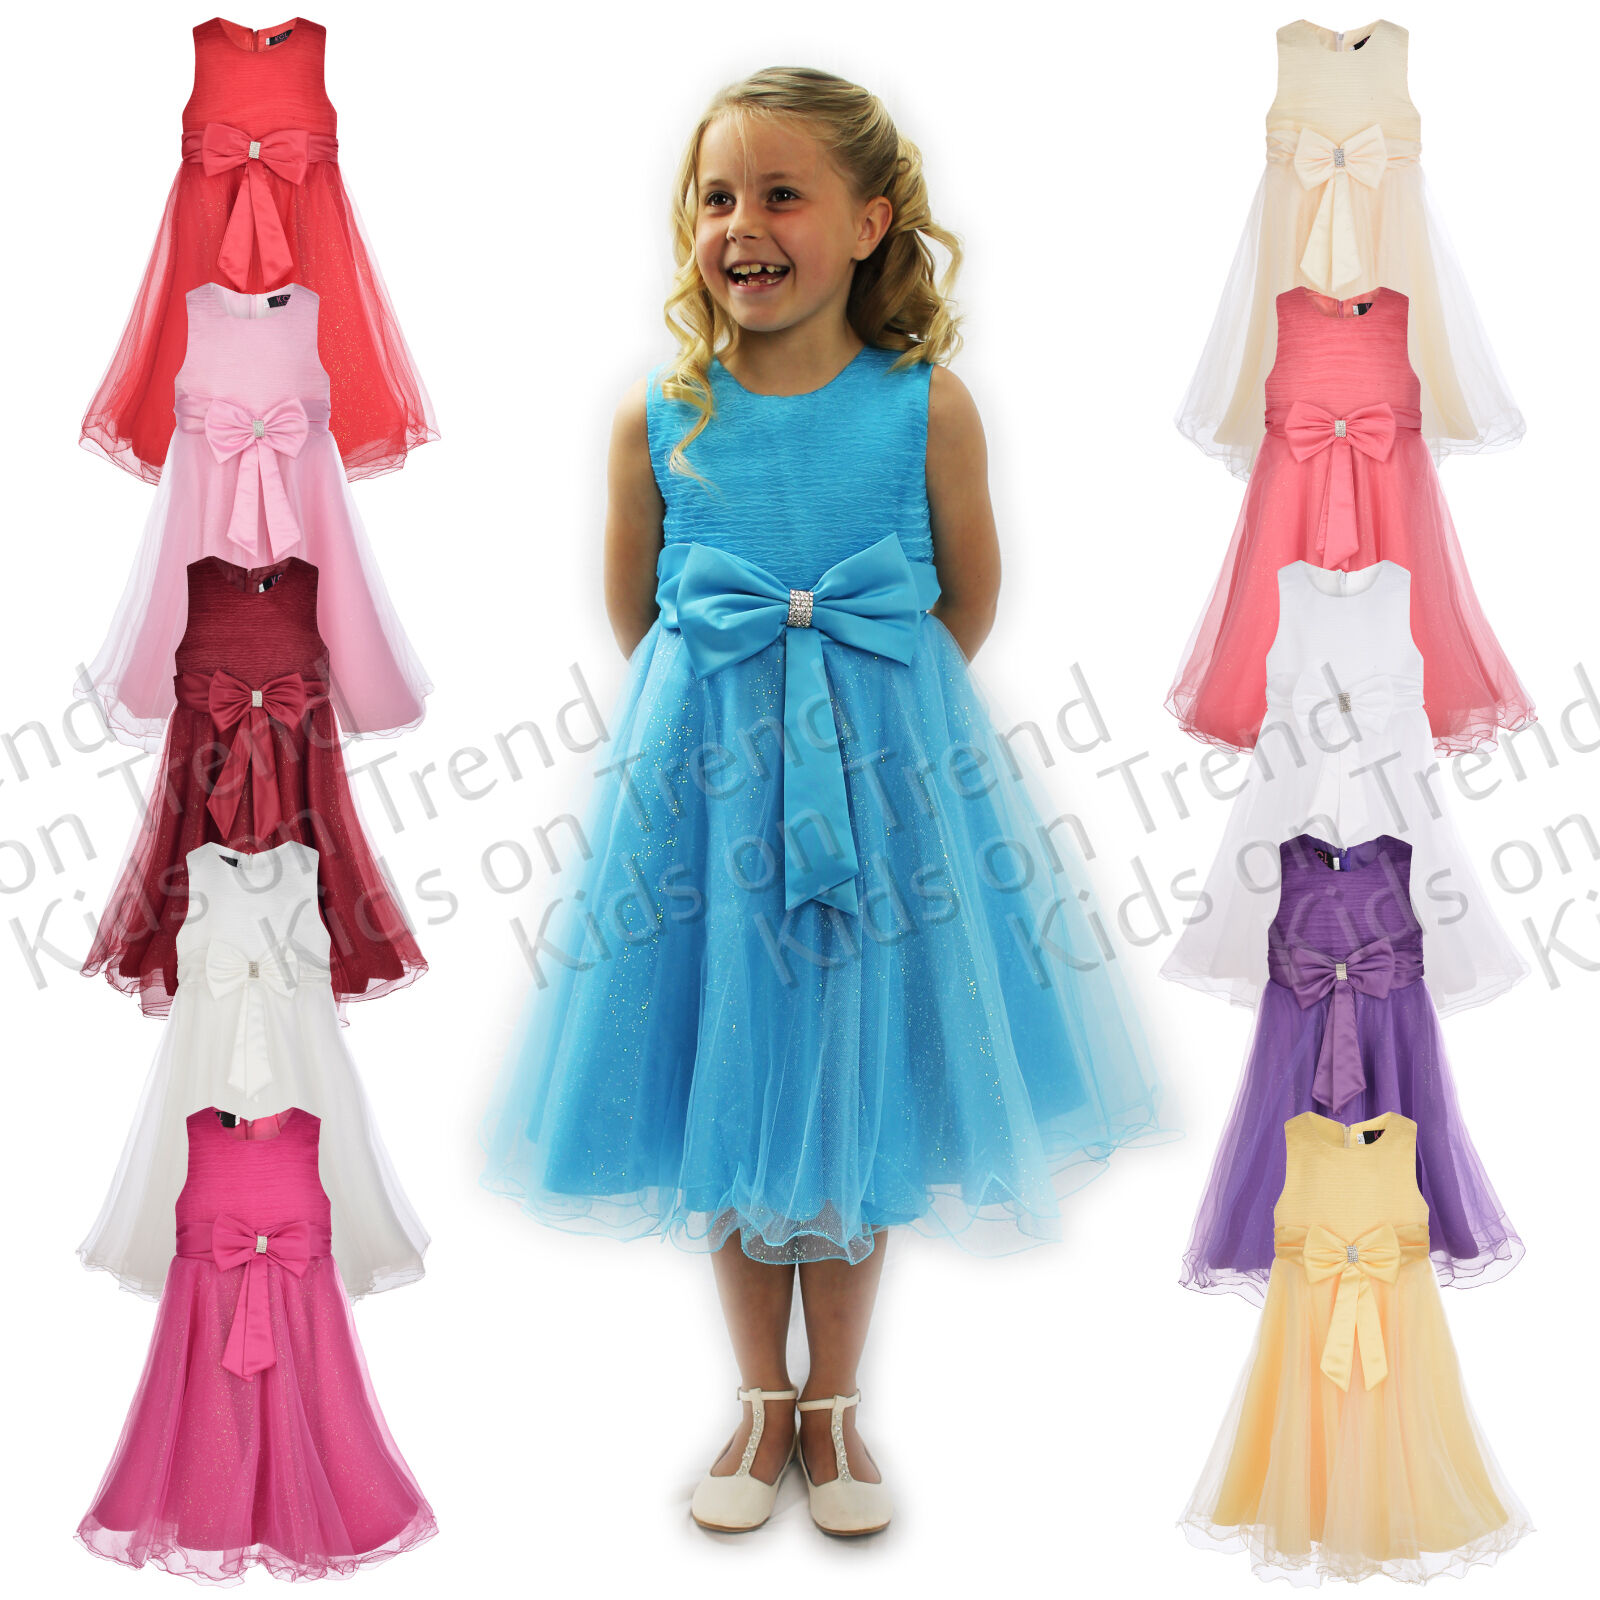 Girls Formal Occasion , Wedding & Formal Occasion , Clothing, Shoes ...